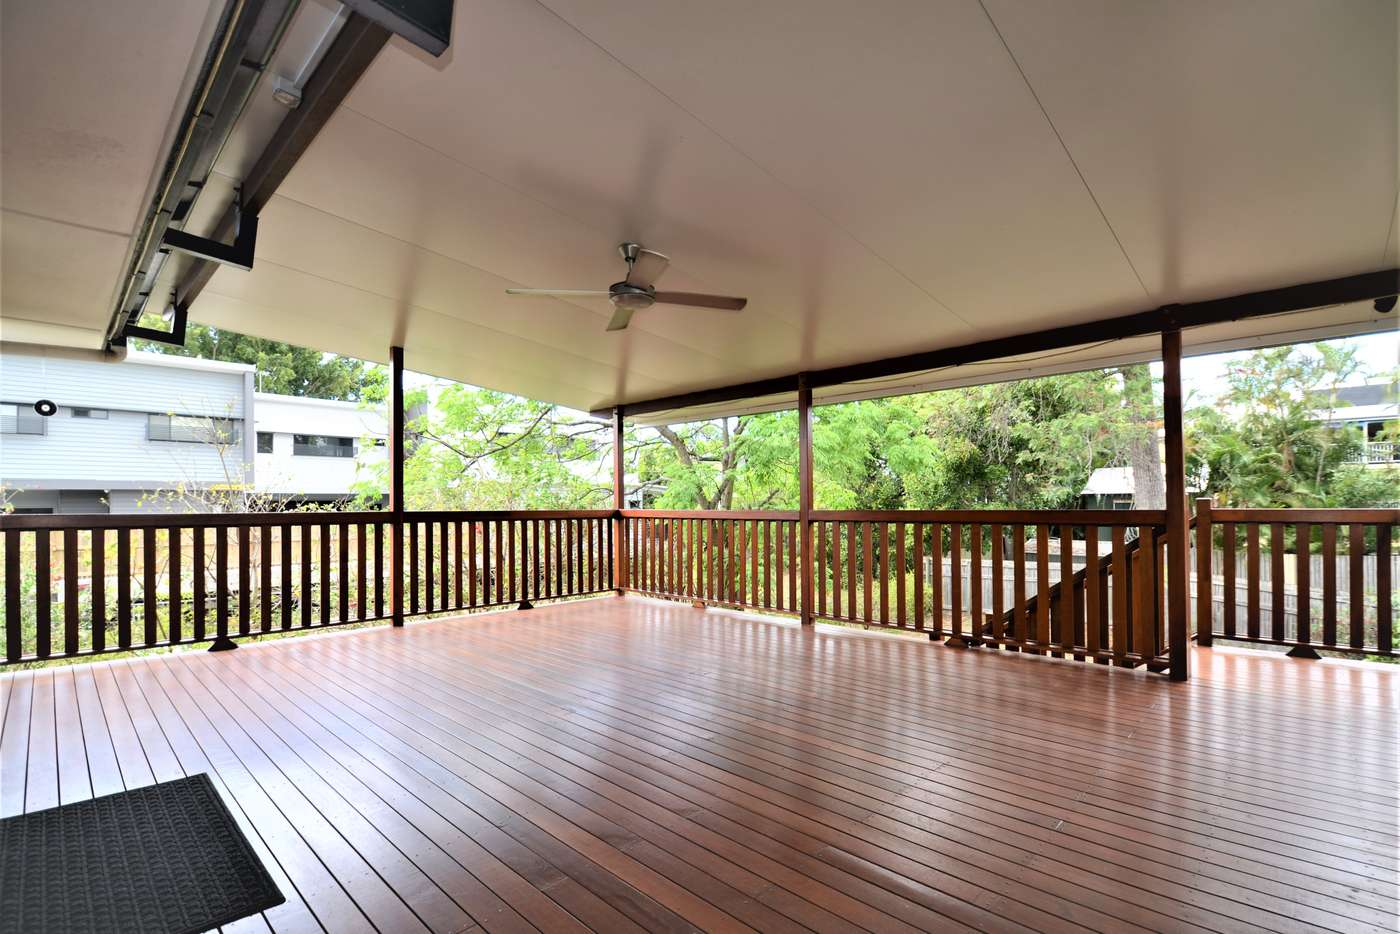 Main view of Homely house listing, 5 Gloriana Street, Morningside QLD 4170